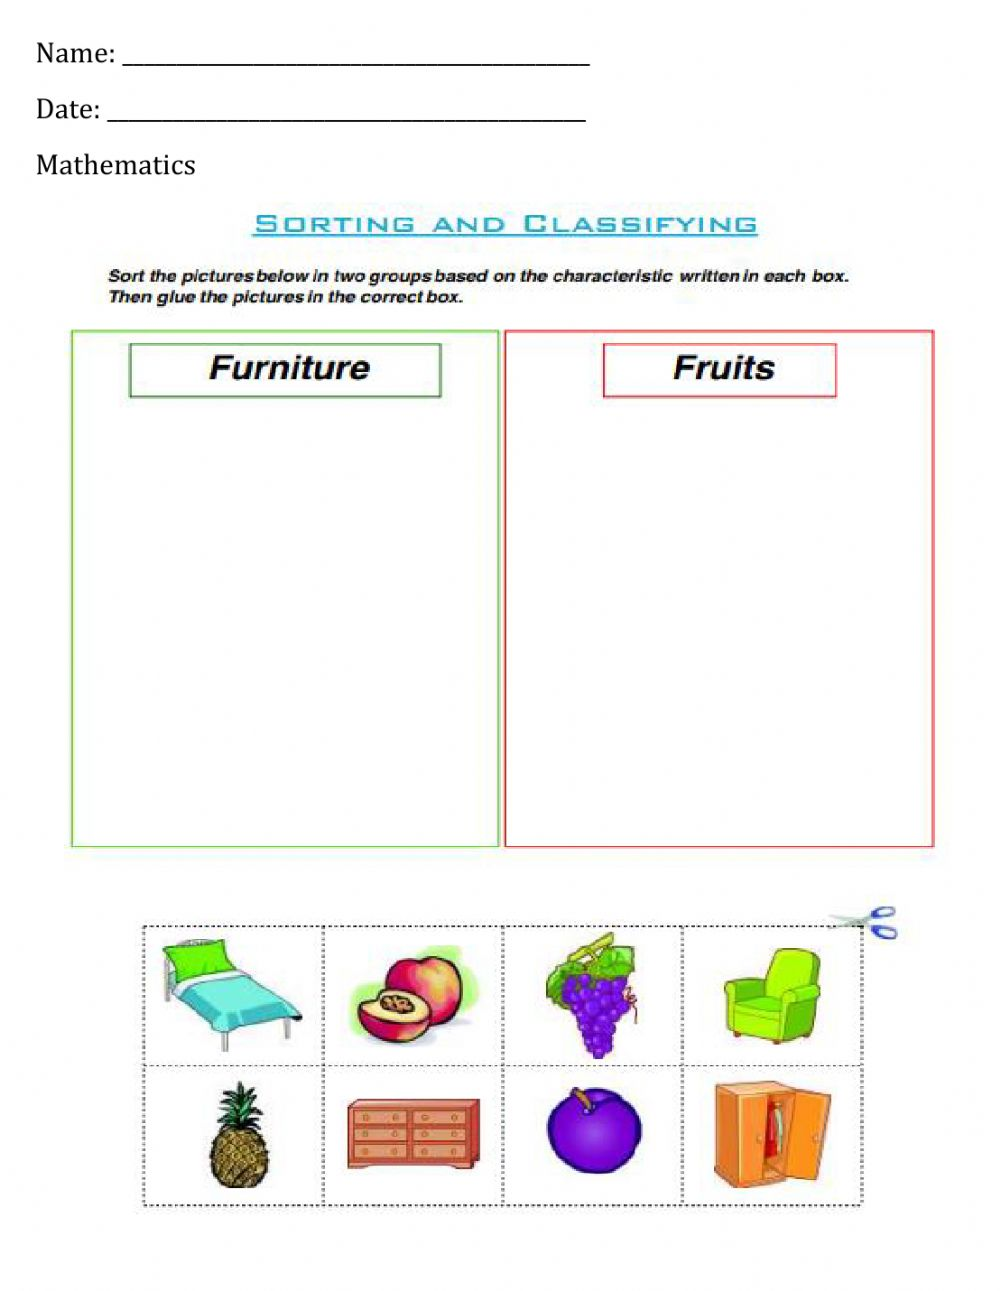 medium resolution of Sorting and Classifying - 2 worksheet